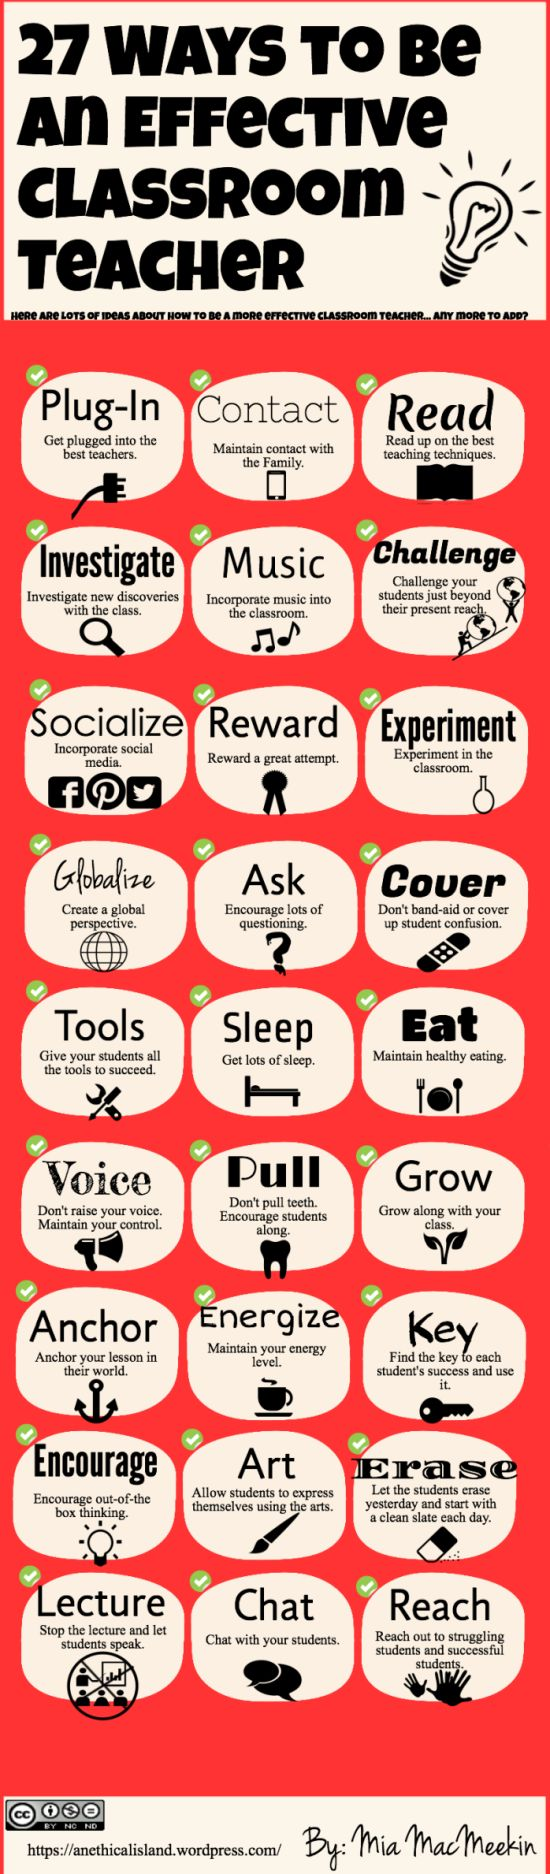 A great way for every teacher to be an effective teacher, which of these guidelines would you say you agree with most?